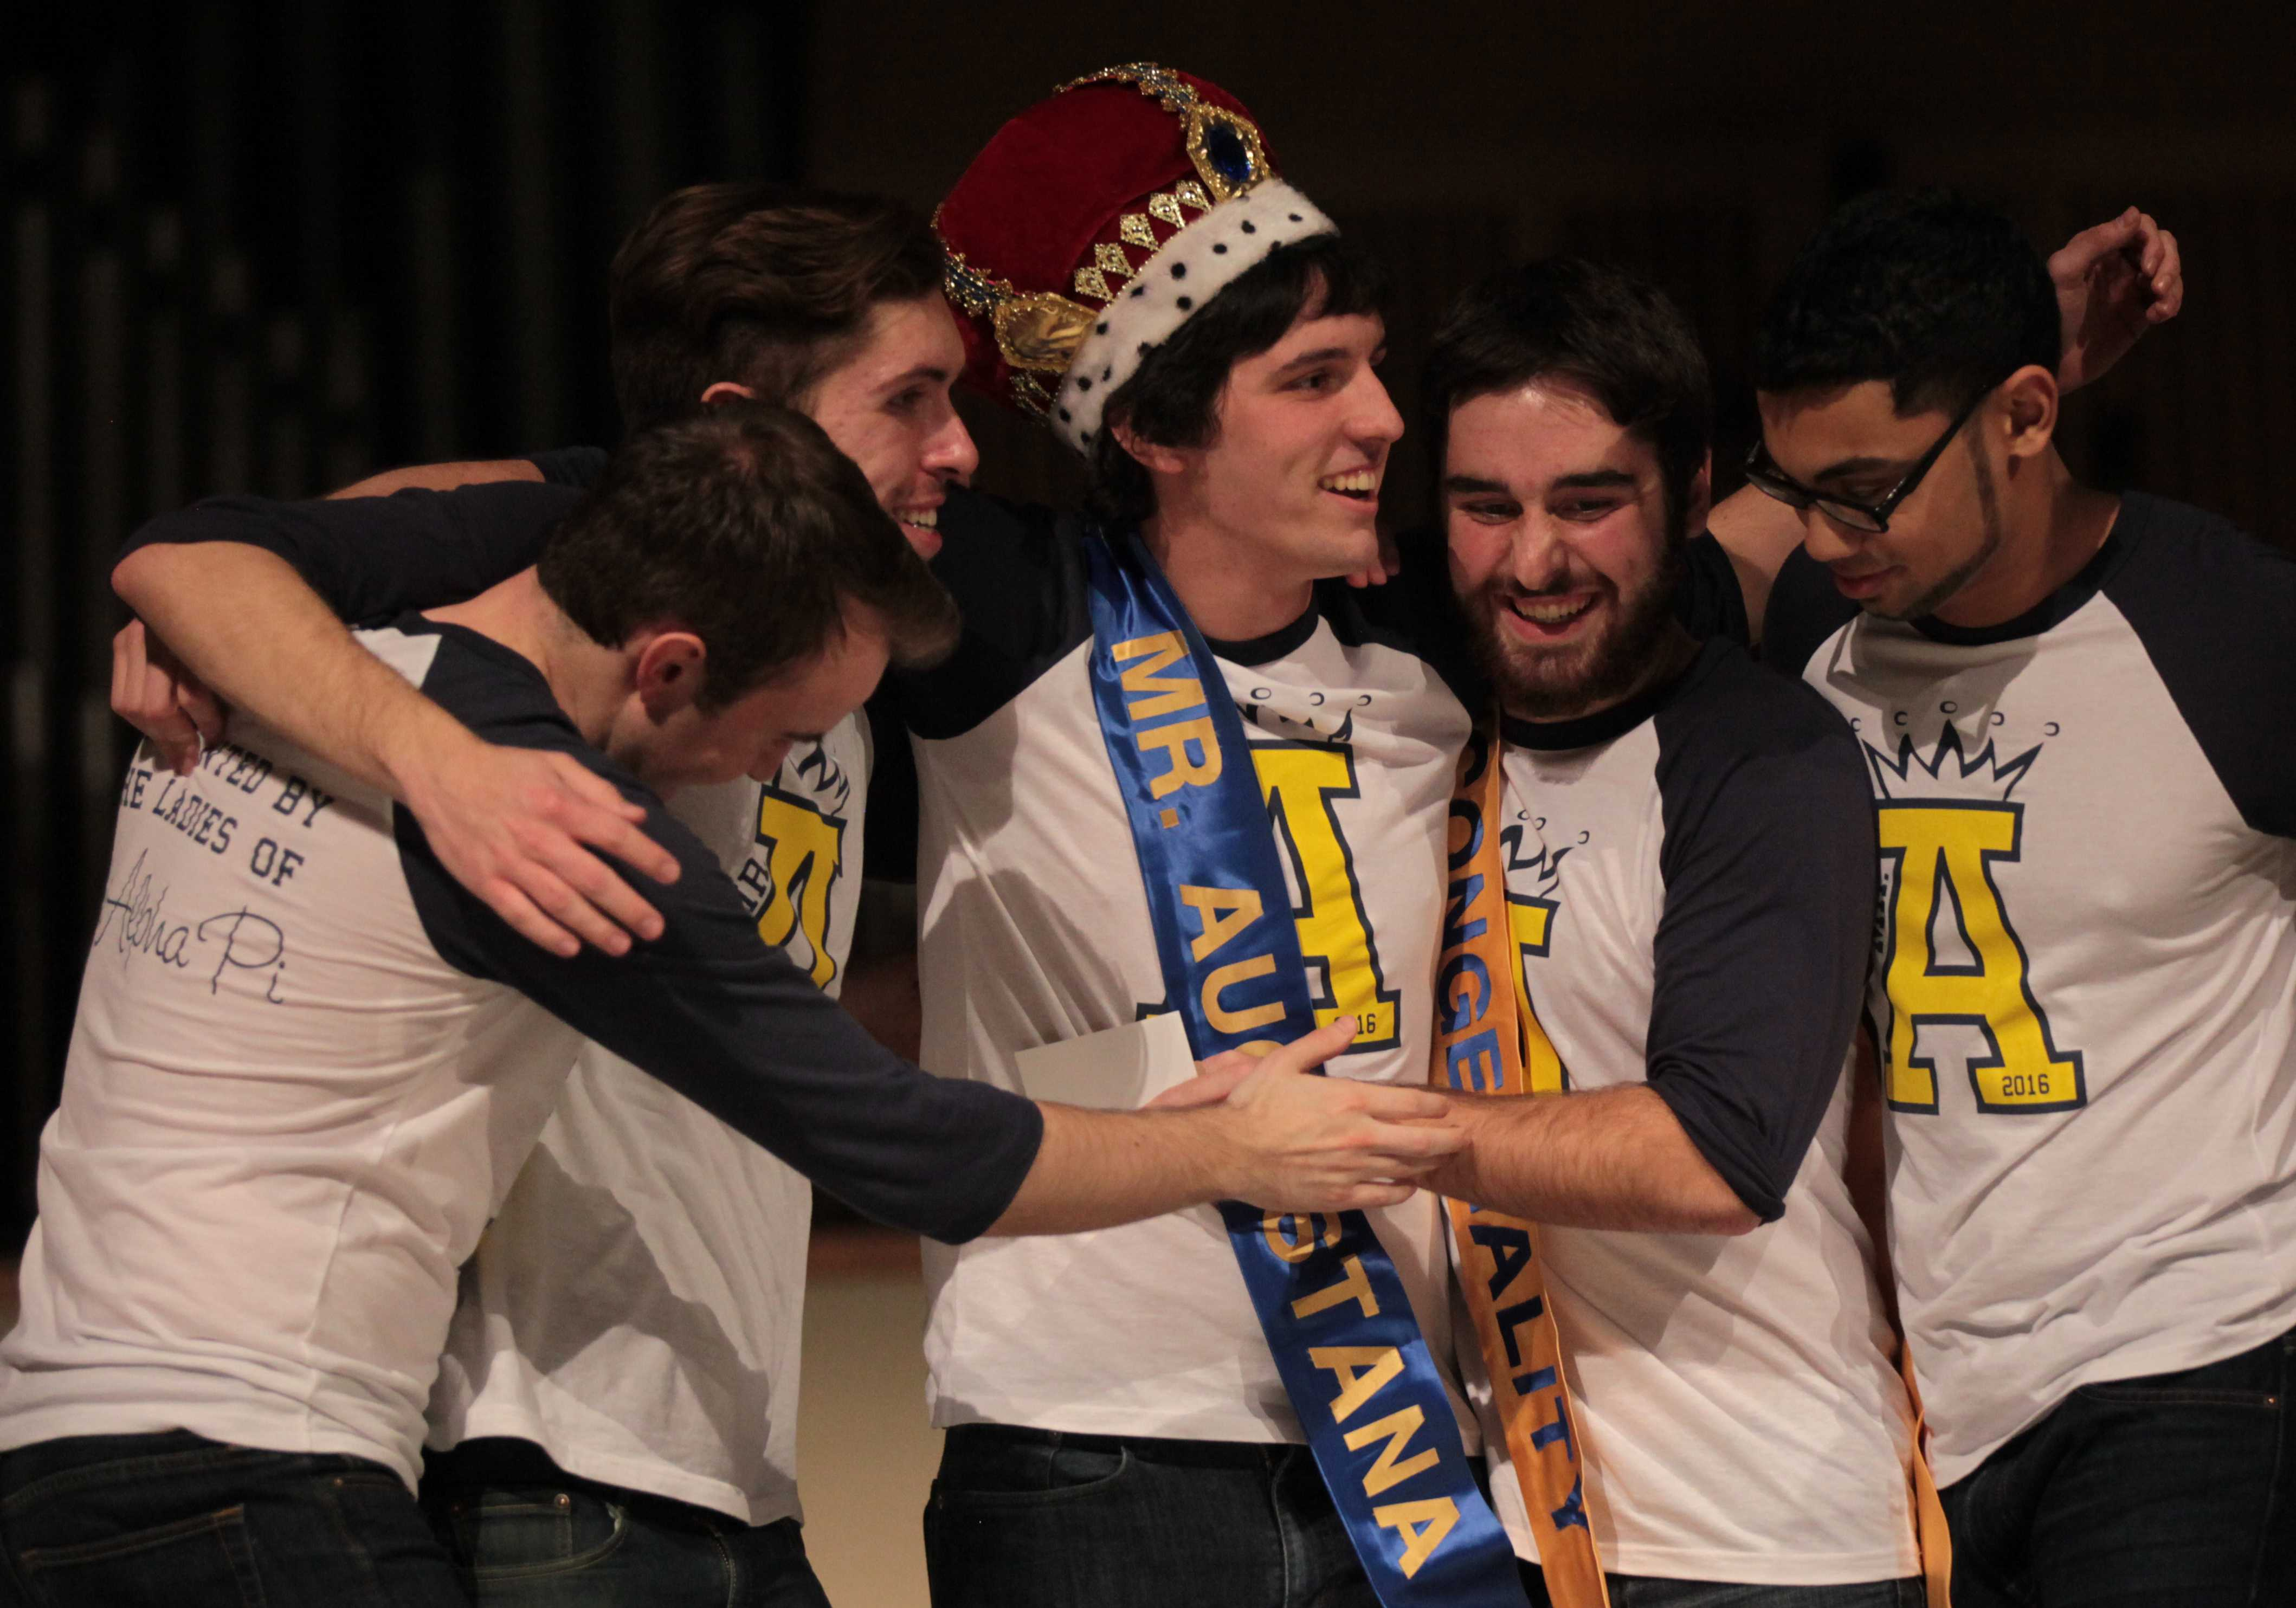 Jake Fiesler is crowned Mr. Augustana 2016. Photo by LuAnna Gerdemann.